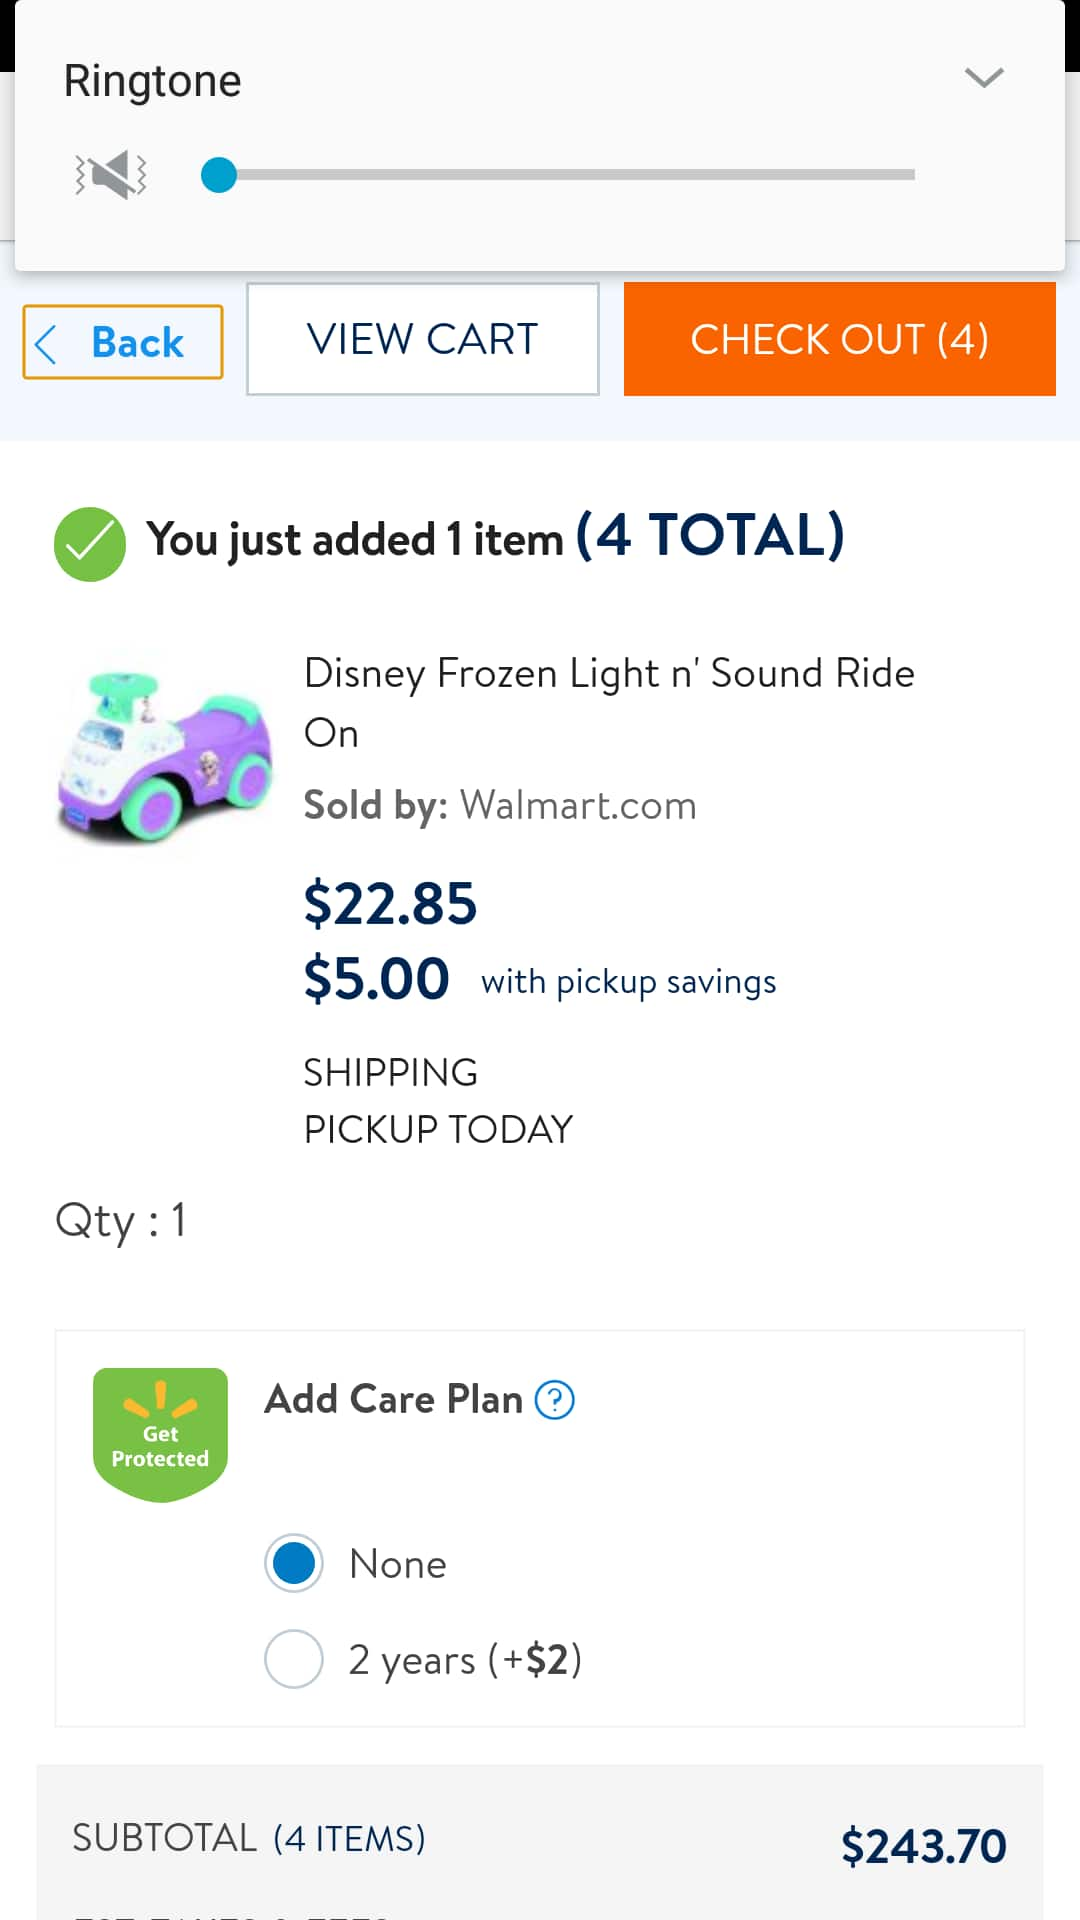 YMMV,  Disney Frozen Ride on,  5.00 at Walmart with store pick up price.